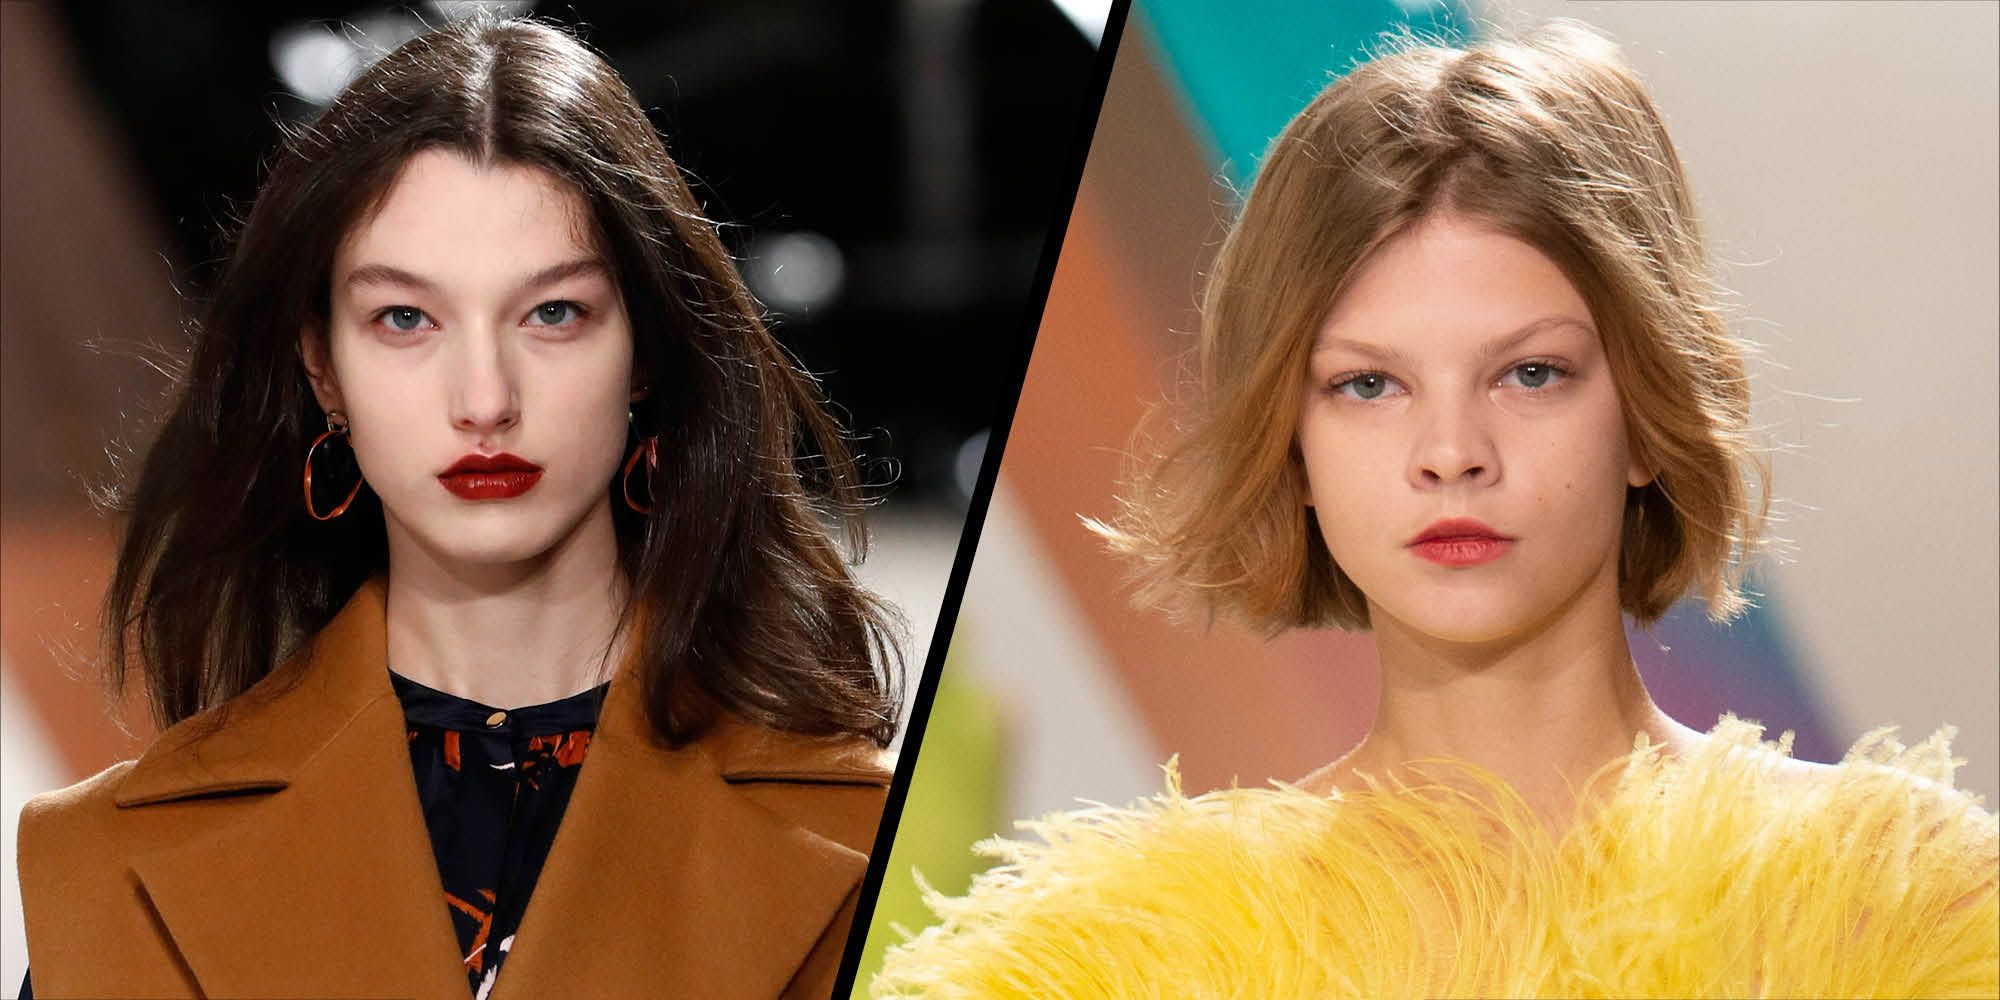 The simple trick used backstage at Fashion Week to achieve natural volume in your hair